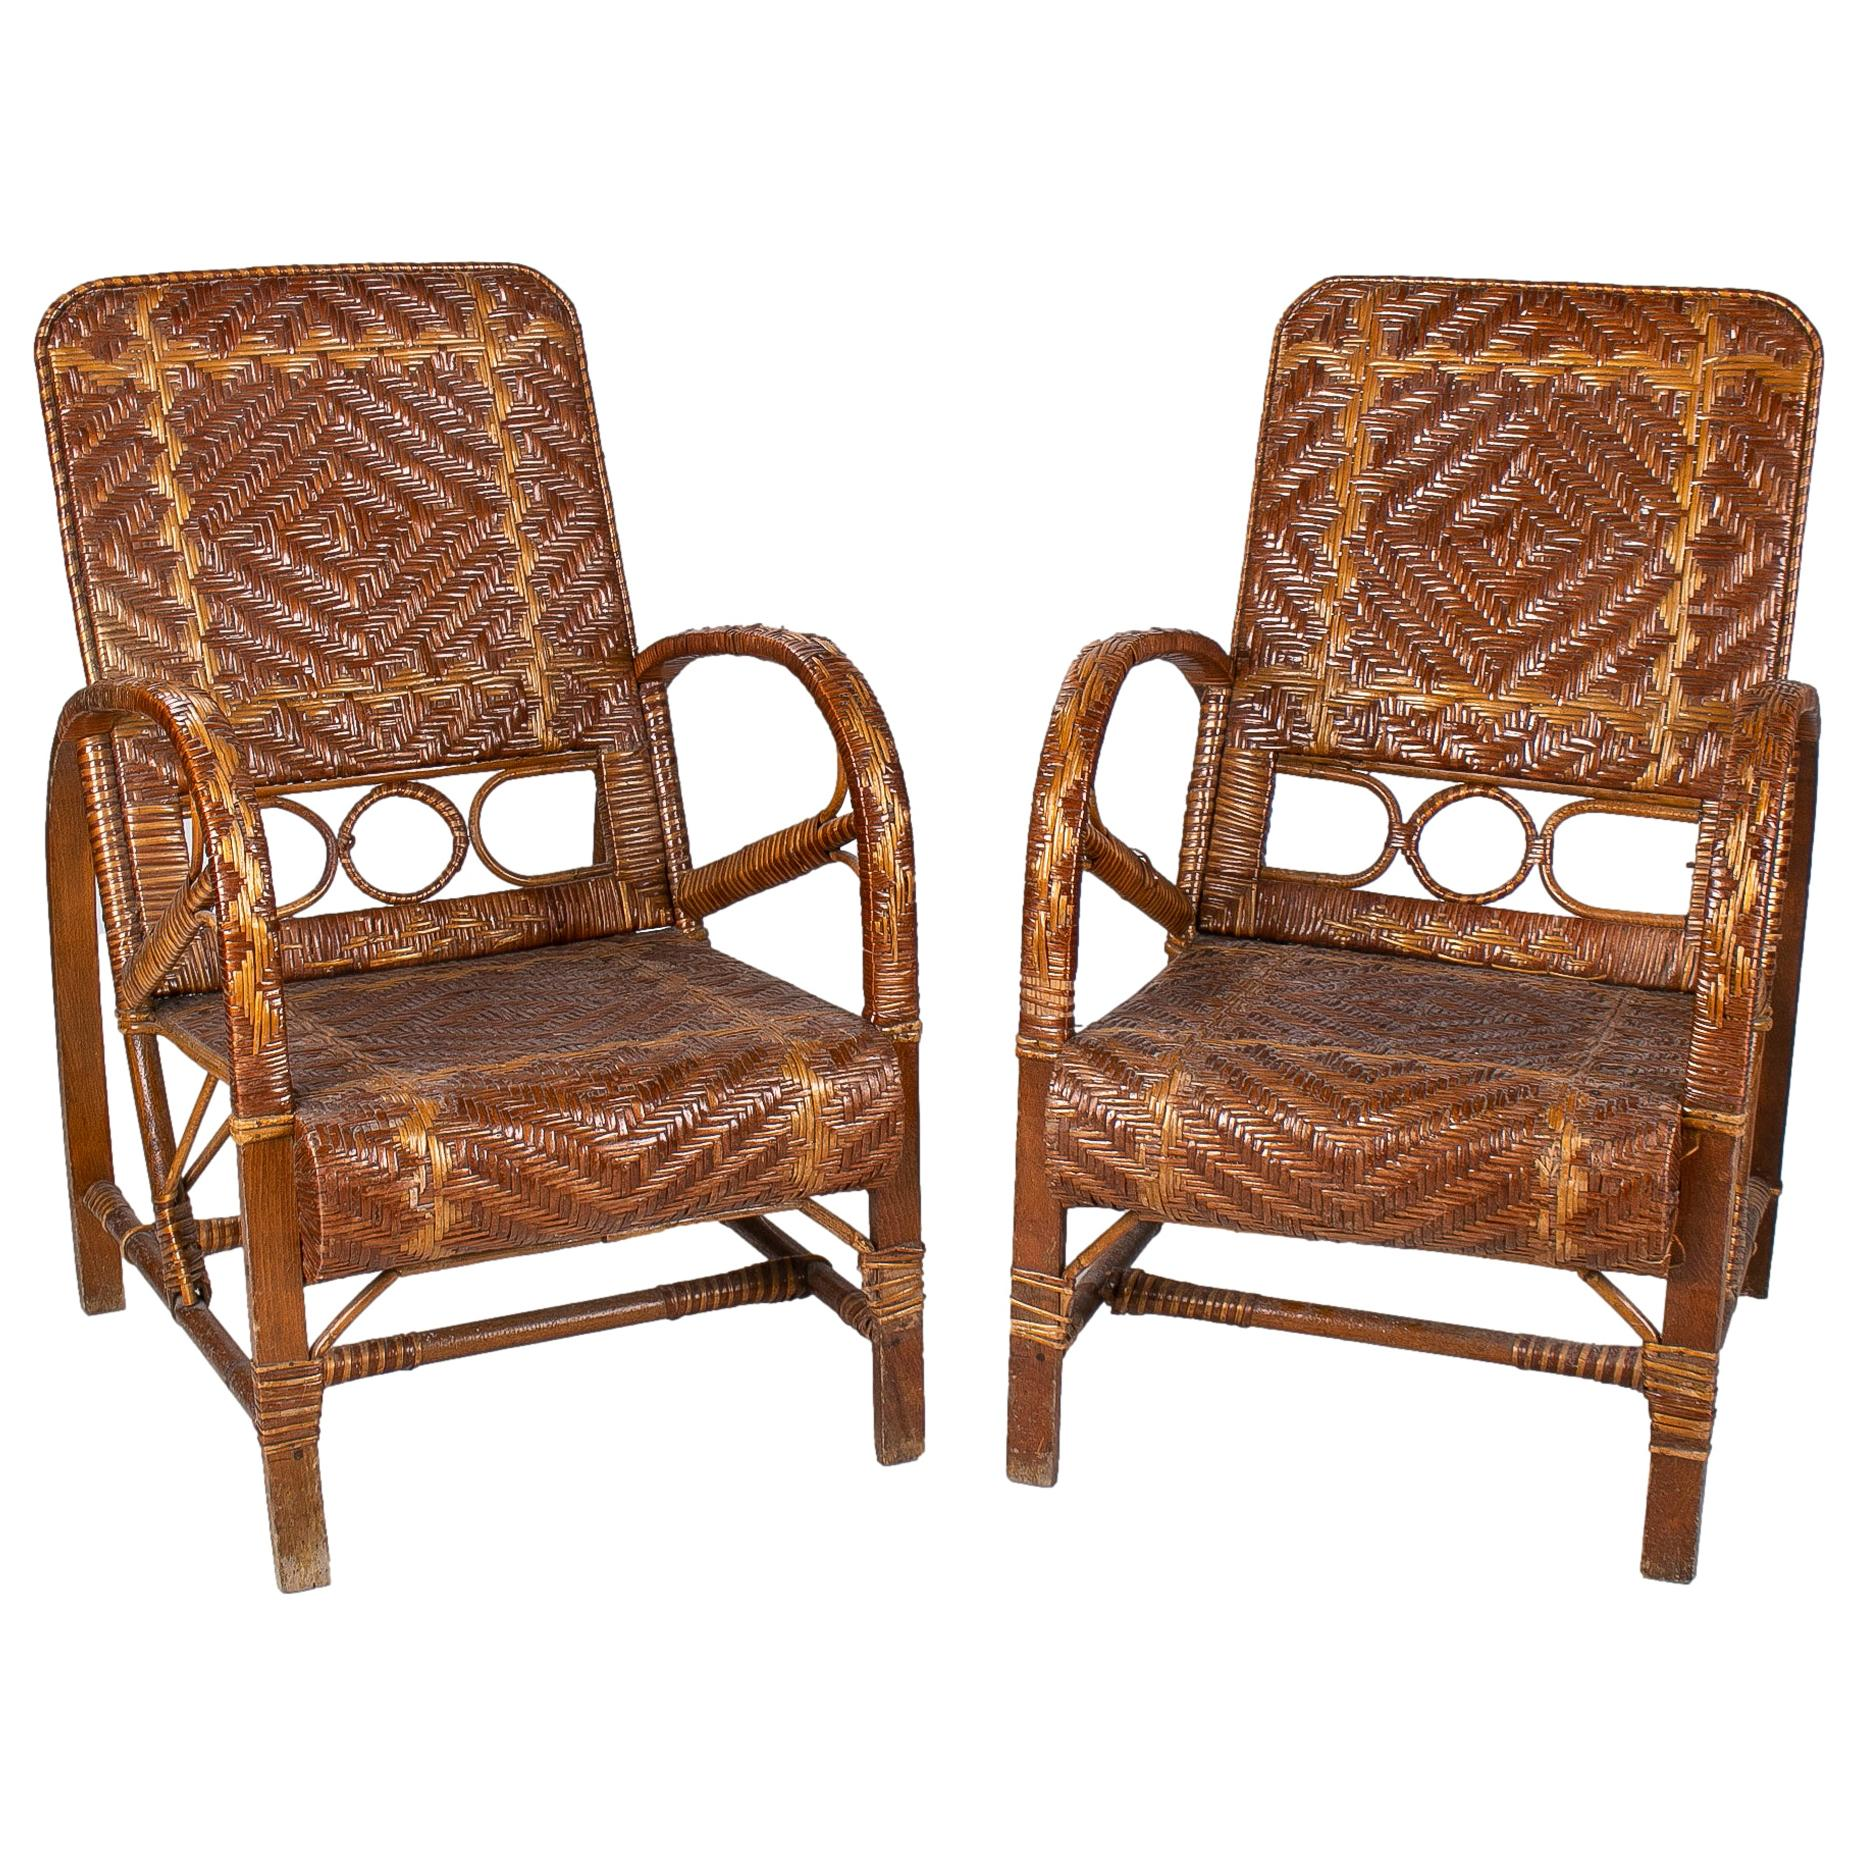 Pair of 1950s Spanish Woven Lace Wicker & Bamboo Armchairs